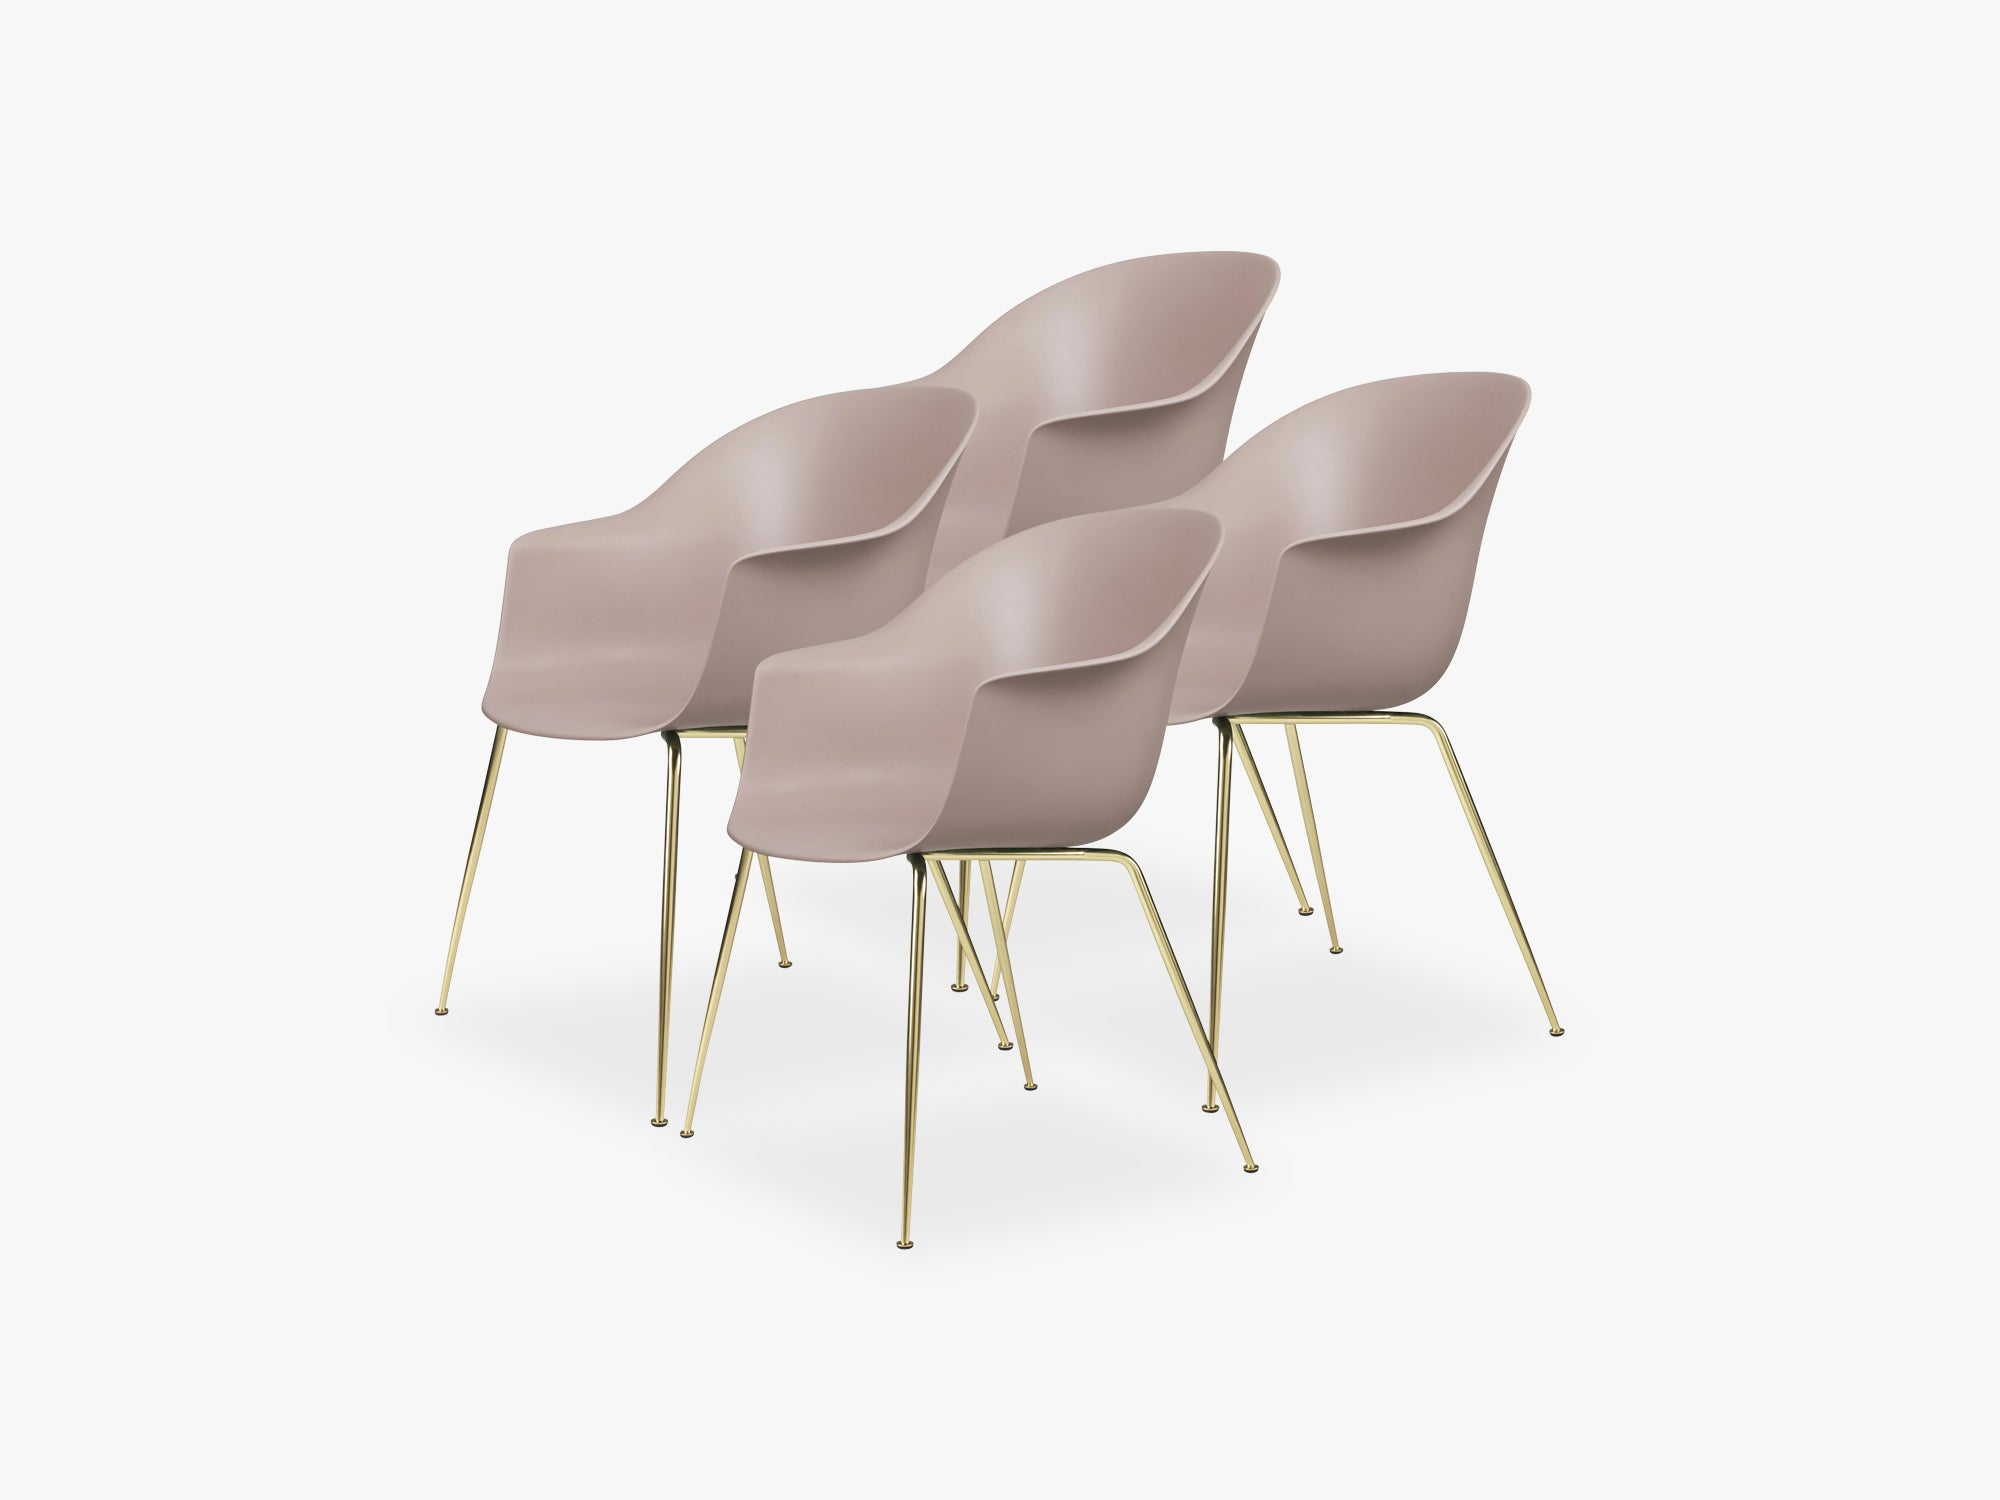 Bat Dining Chair 4 pcs - Conic Brass Semi Matt Base, Sweet Pink fra GUBI